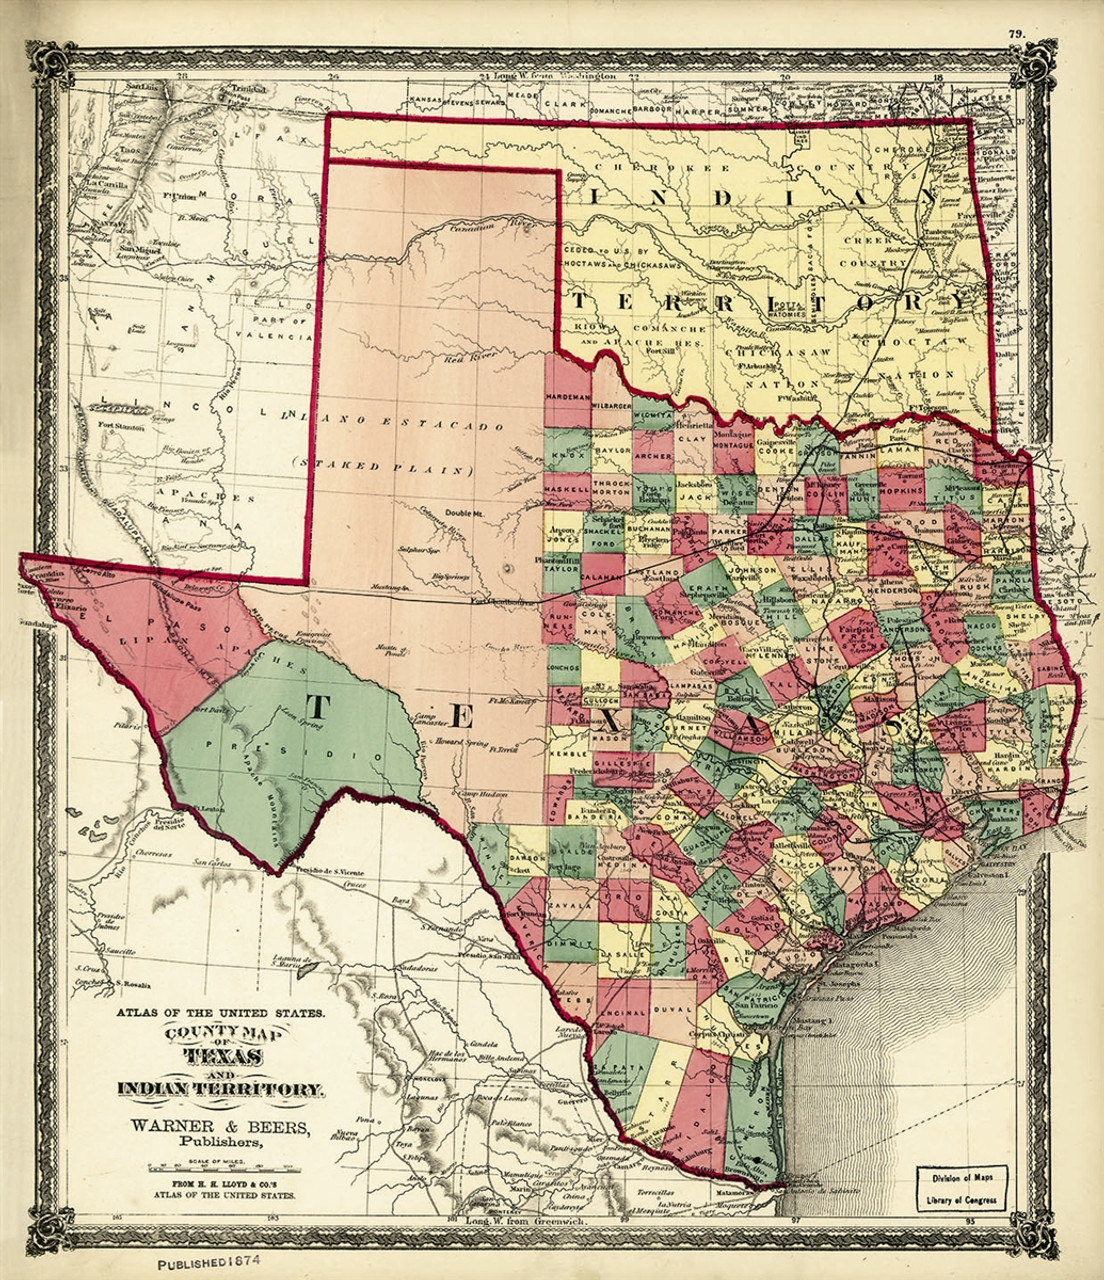 1874 County Map of Texas and Indian Territory on indians iowa map, indians new york map, indians in tennessee, indians in north carolina, indians utah map, indians of central texas, indians in texas history, indians in idaho, indians in washington state, indians in pennsylvania, indians ohio map, indians in rhode island, indians in south carolina, tonkawa indians map, indians in north dakota, indians in wisconsin,